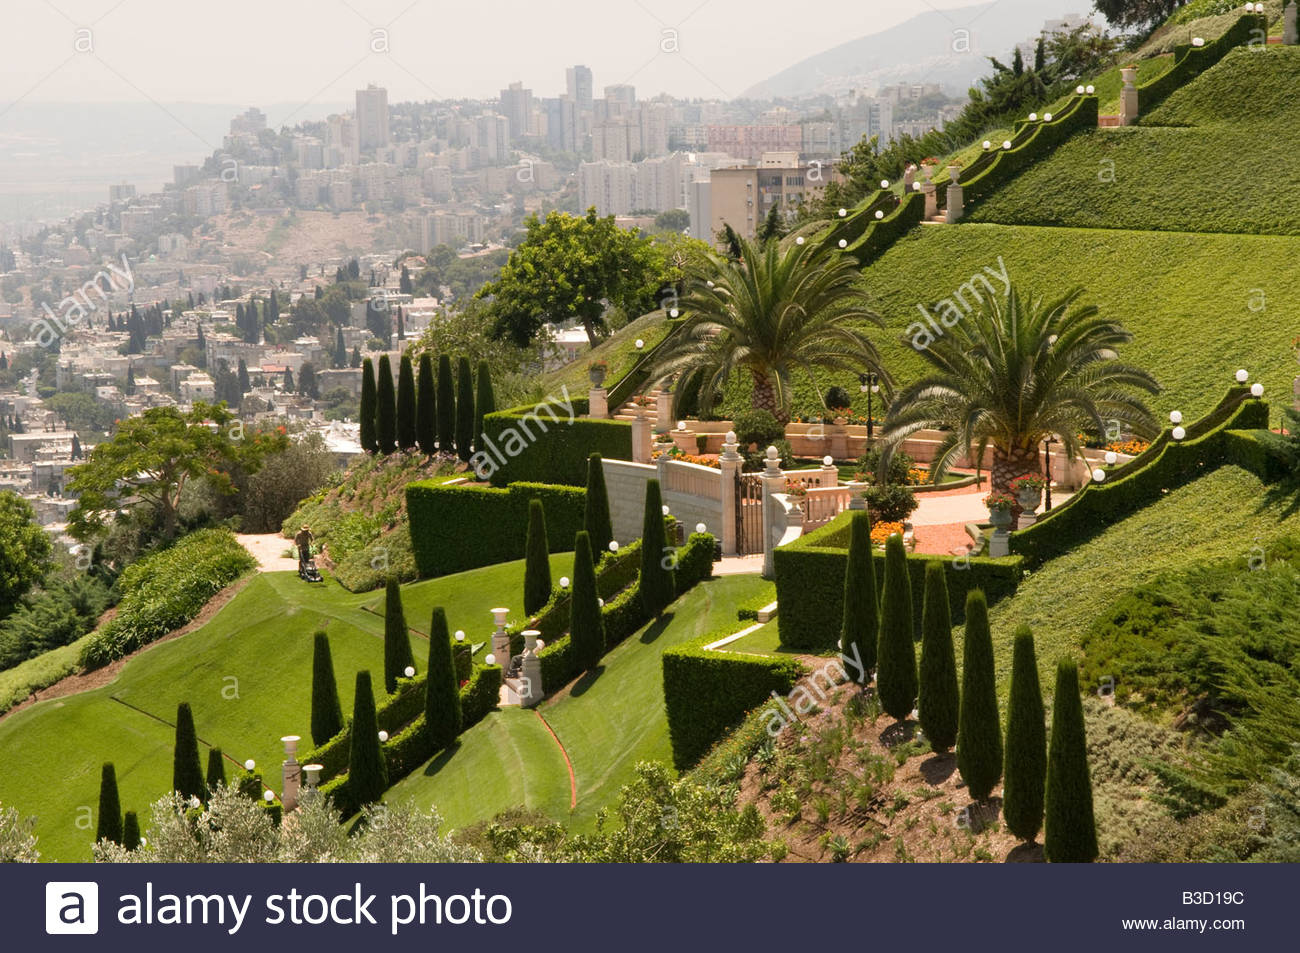 Uncategorized Terraced Gardens a general view shows the terraced gardens of bahai world centre in israeli port city haifa